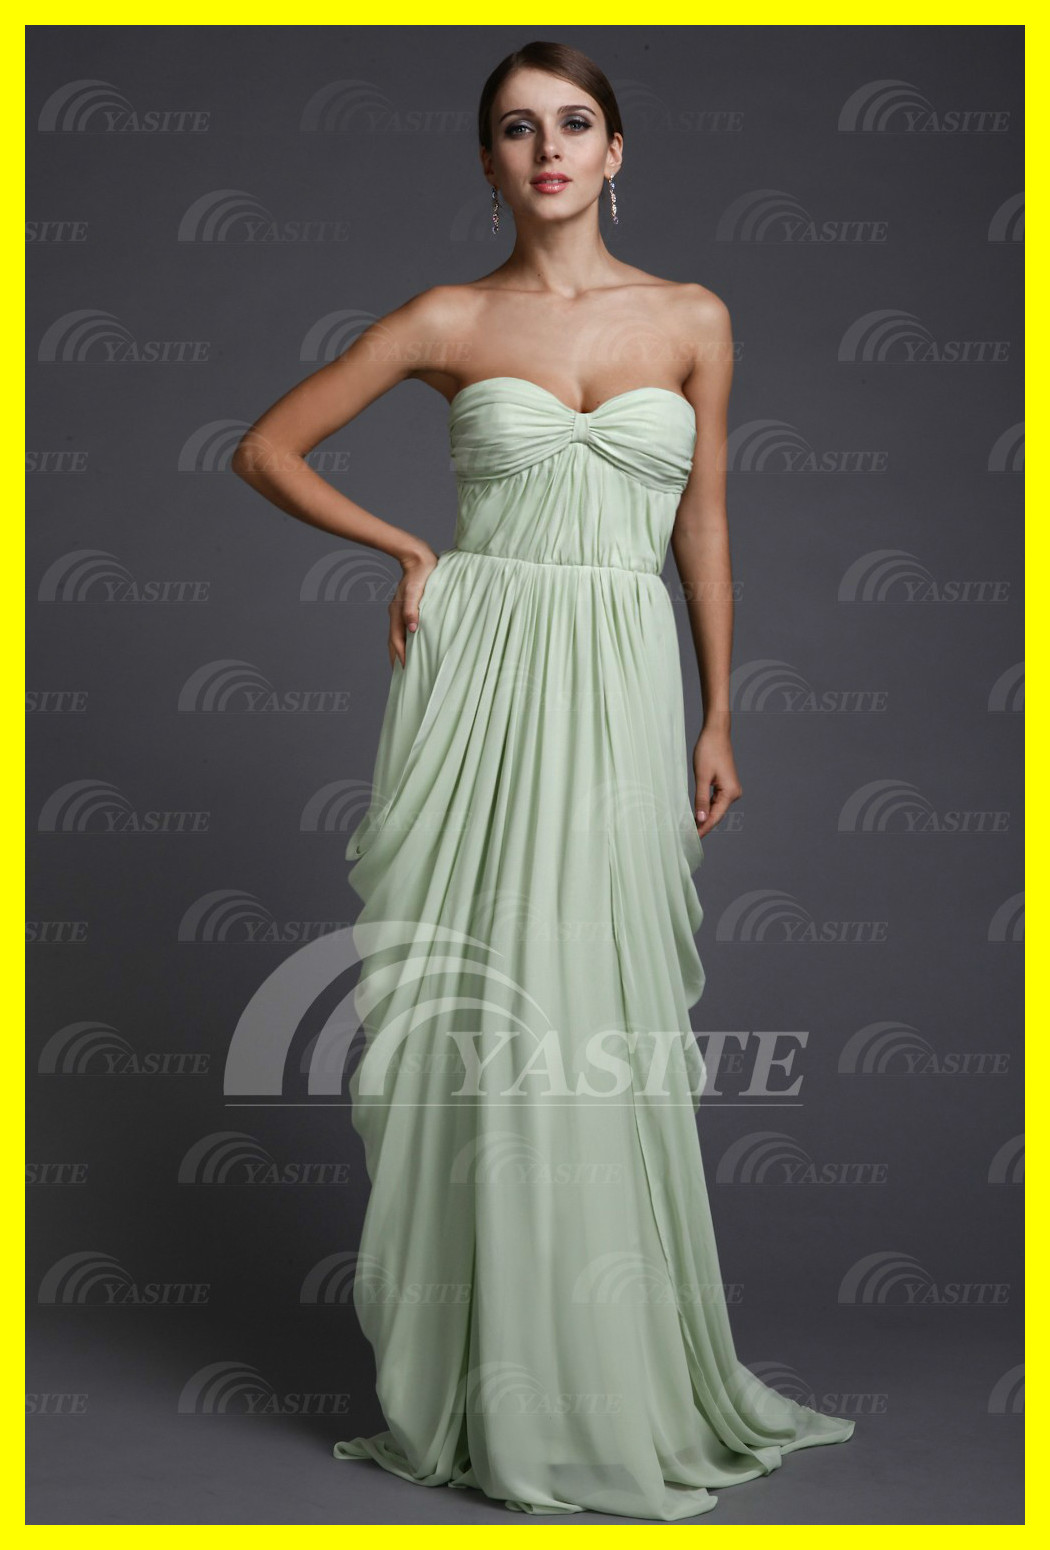 Prom dresses website short pink rent dress xo las vegas a for Wedding dresses for rent las vegas